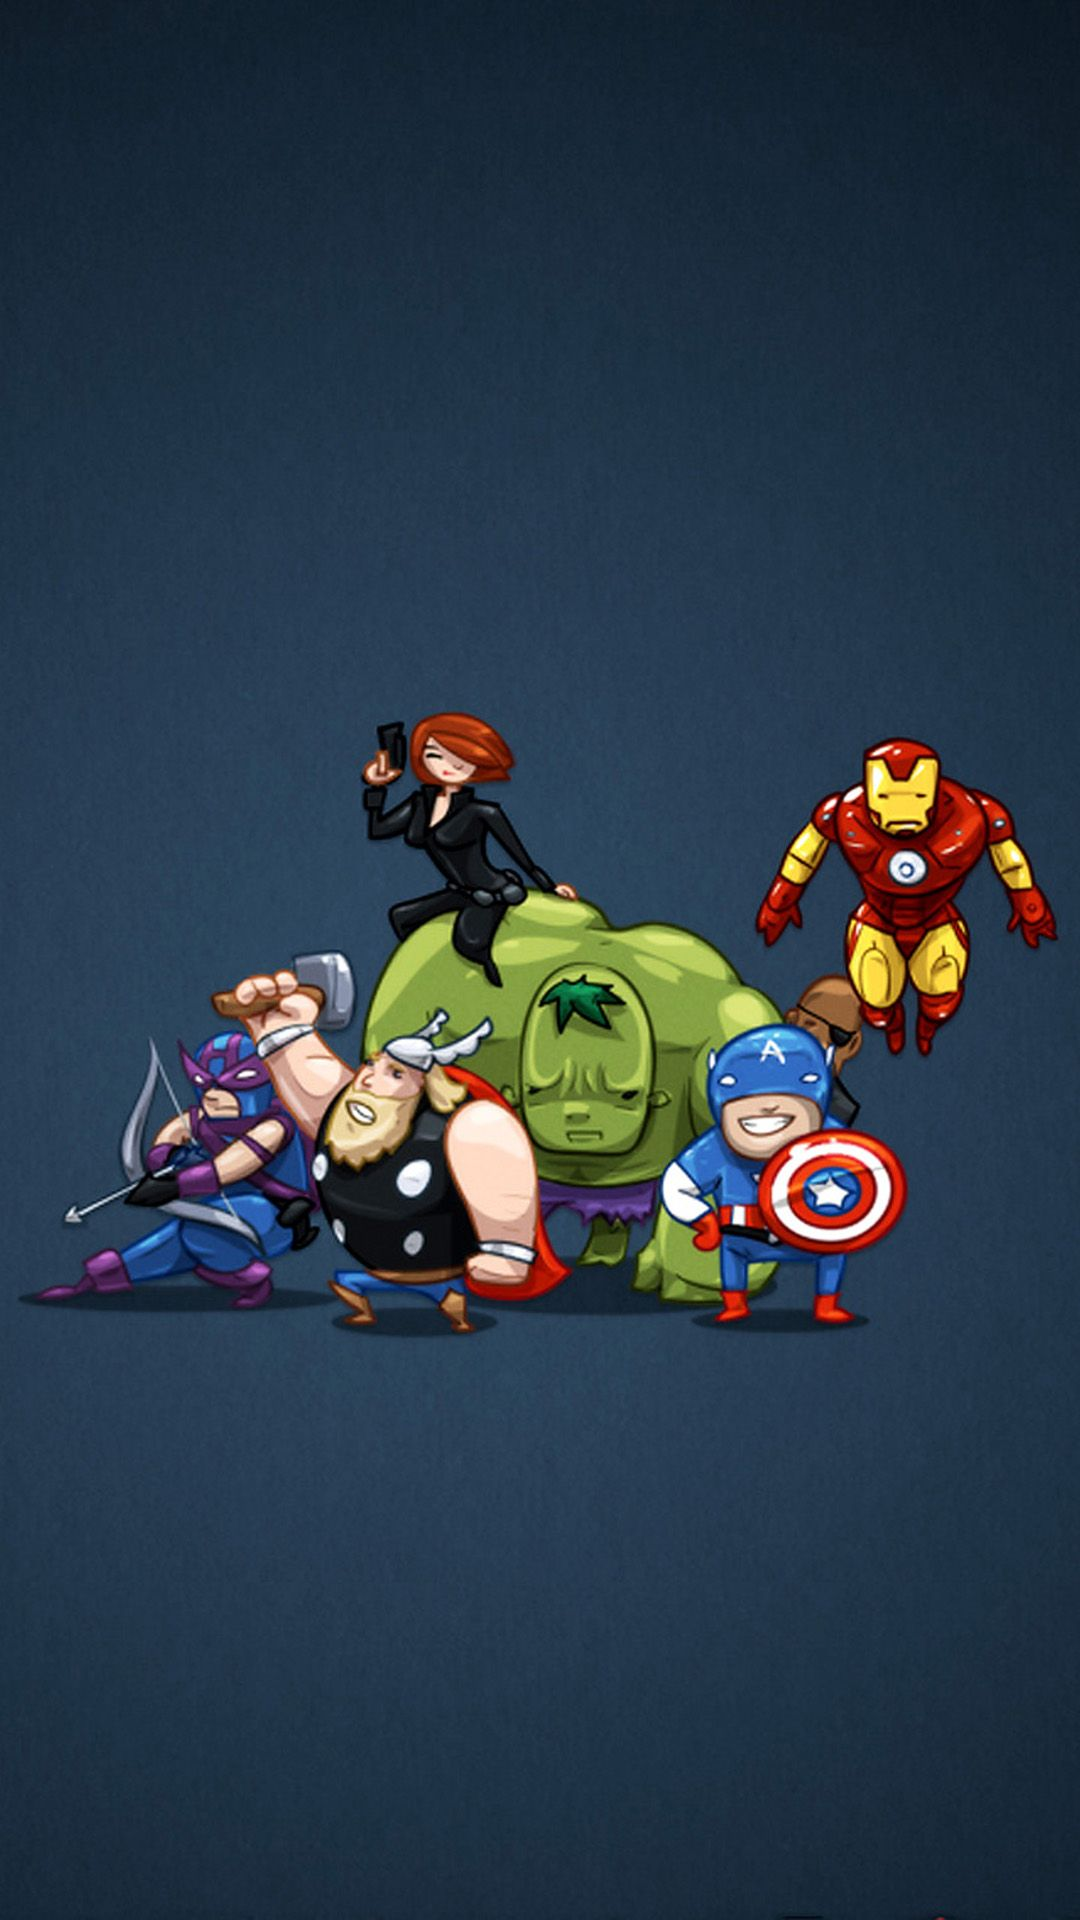 Must see Wallpaper Marvel Galaxy - 6e238d5516571f6a87a89df28e263cfe  Collection_364483.jpg